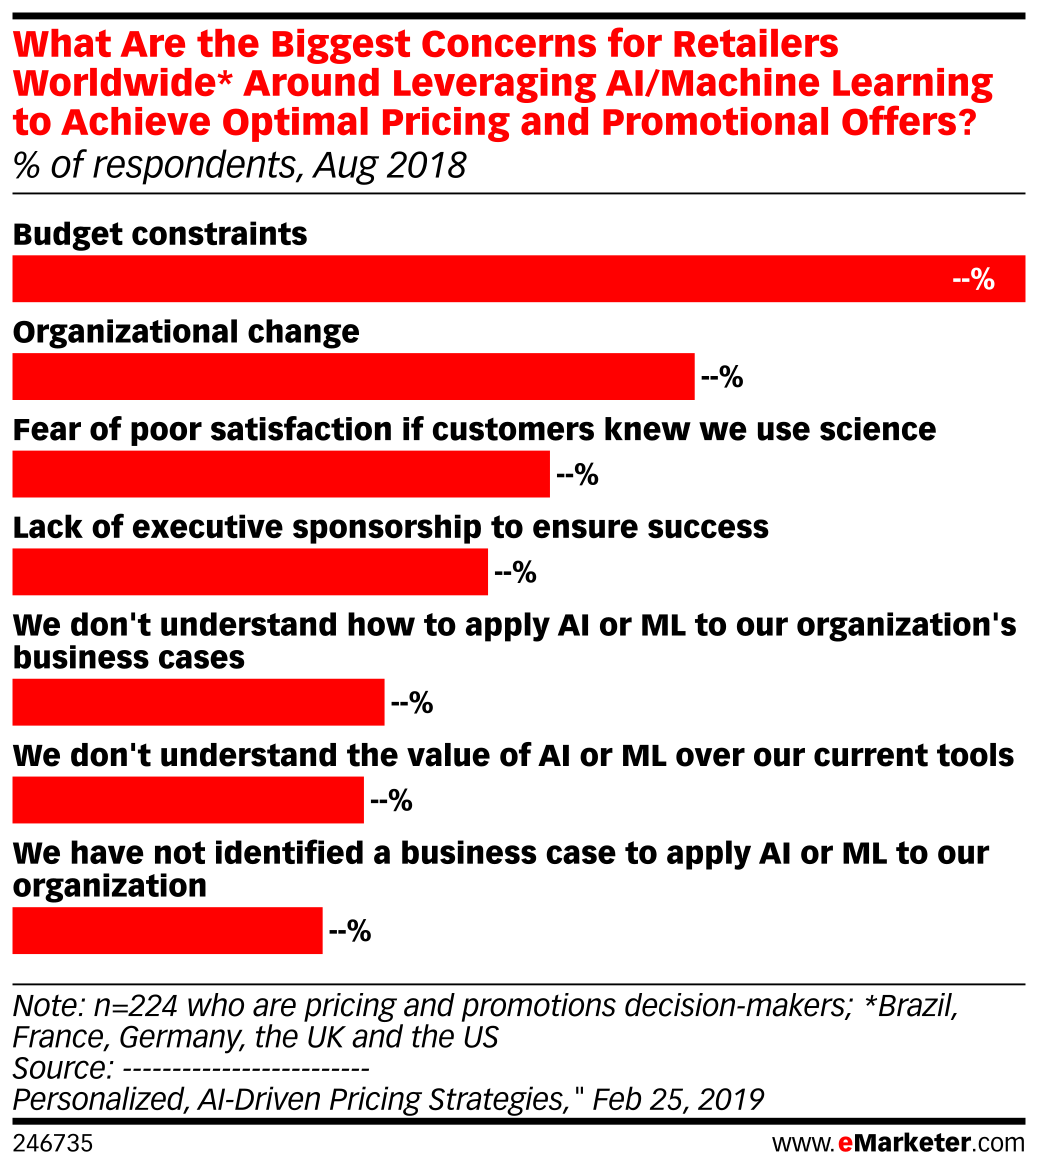 What Are the Biggest Concerns for Retailers Worldwide* Around Leveraging AI/Machine Learning to Achieve Optimal Pricing and Promotional Offers? (% of respondents, Aug 2018)